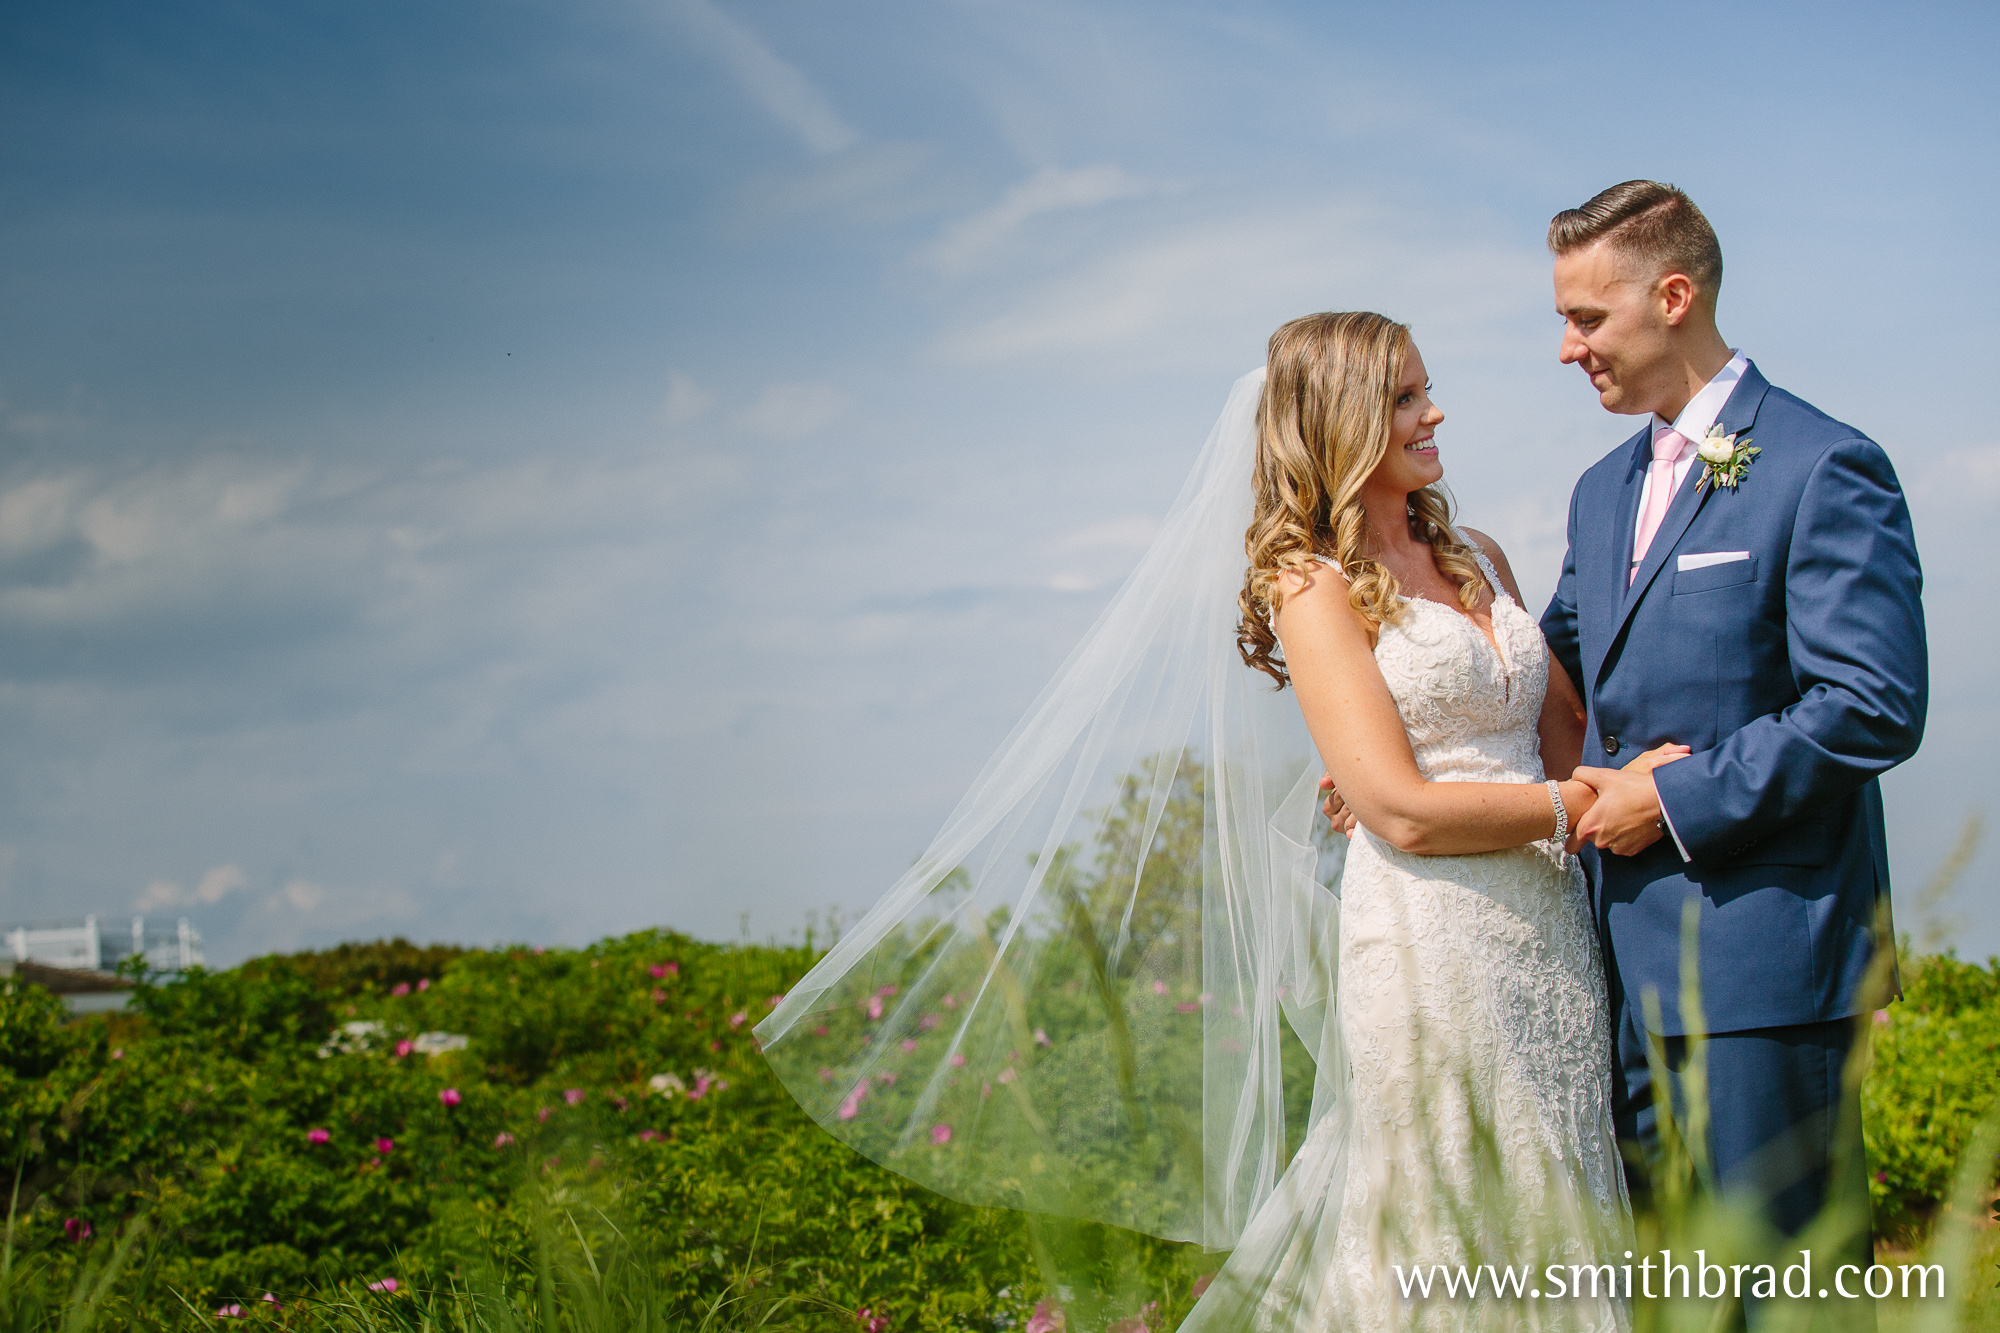 Ocean_House_Watch_Hill_Westerly_Rhode_Island_Beach_Wedding_Photography_Photographer-13